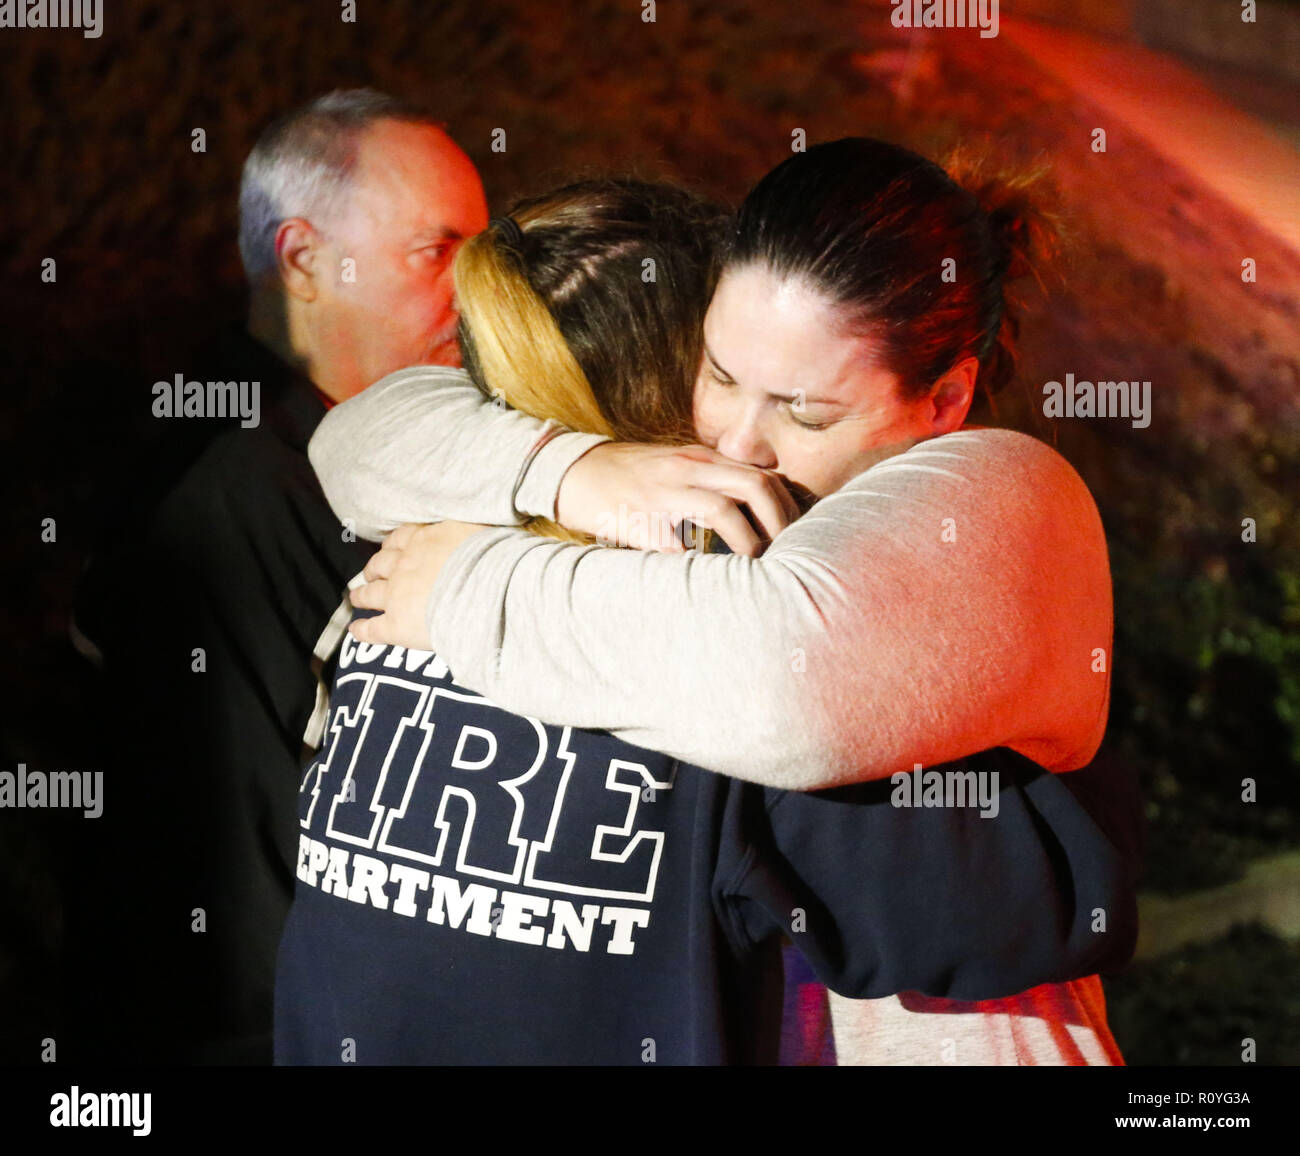 Los Angeles, California, USA. 8th Nov, 2018. People comfort each other outside the Borderline Bar and Grill where a gunman injured 11 people in Thousand Oaks, California, November 8, 2018. Ventura County sheriff's spokesman says gunman is dead inside the bar. Credit: Ringo Chiu/ZUMA Wire/Alamy Live News - Stock Image